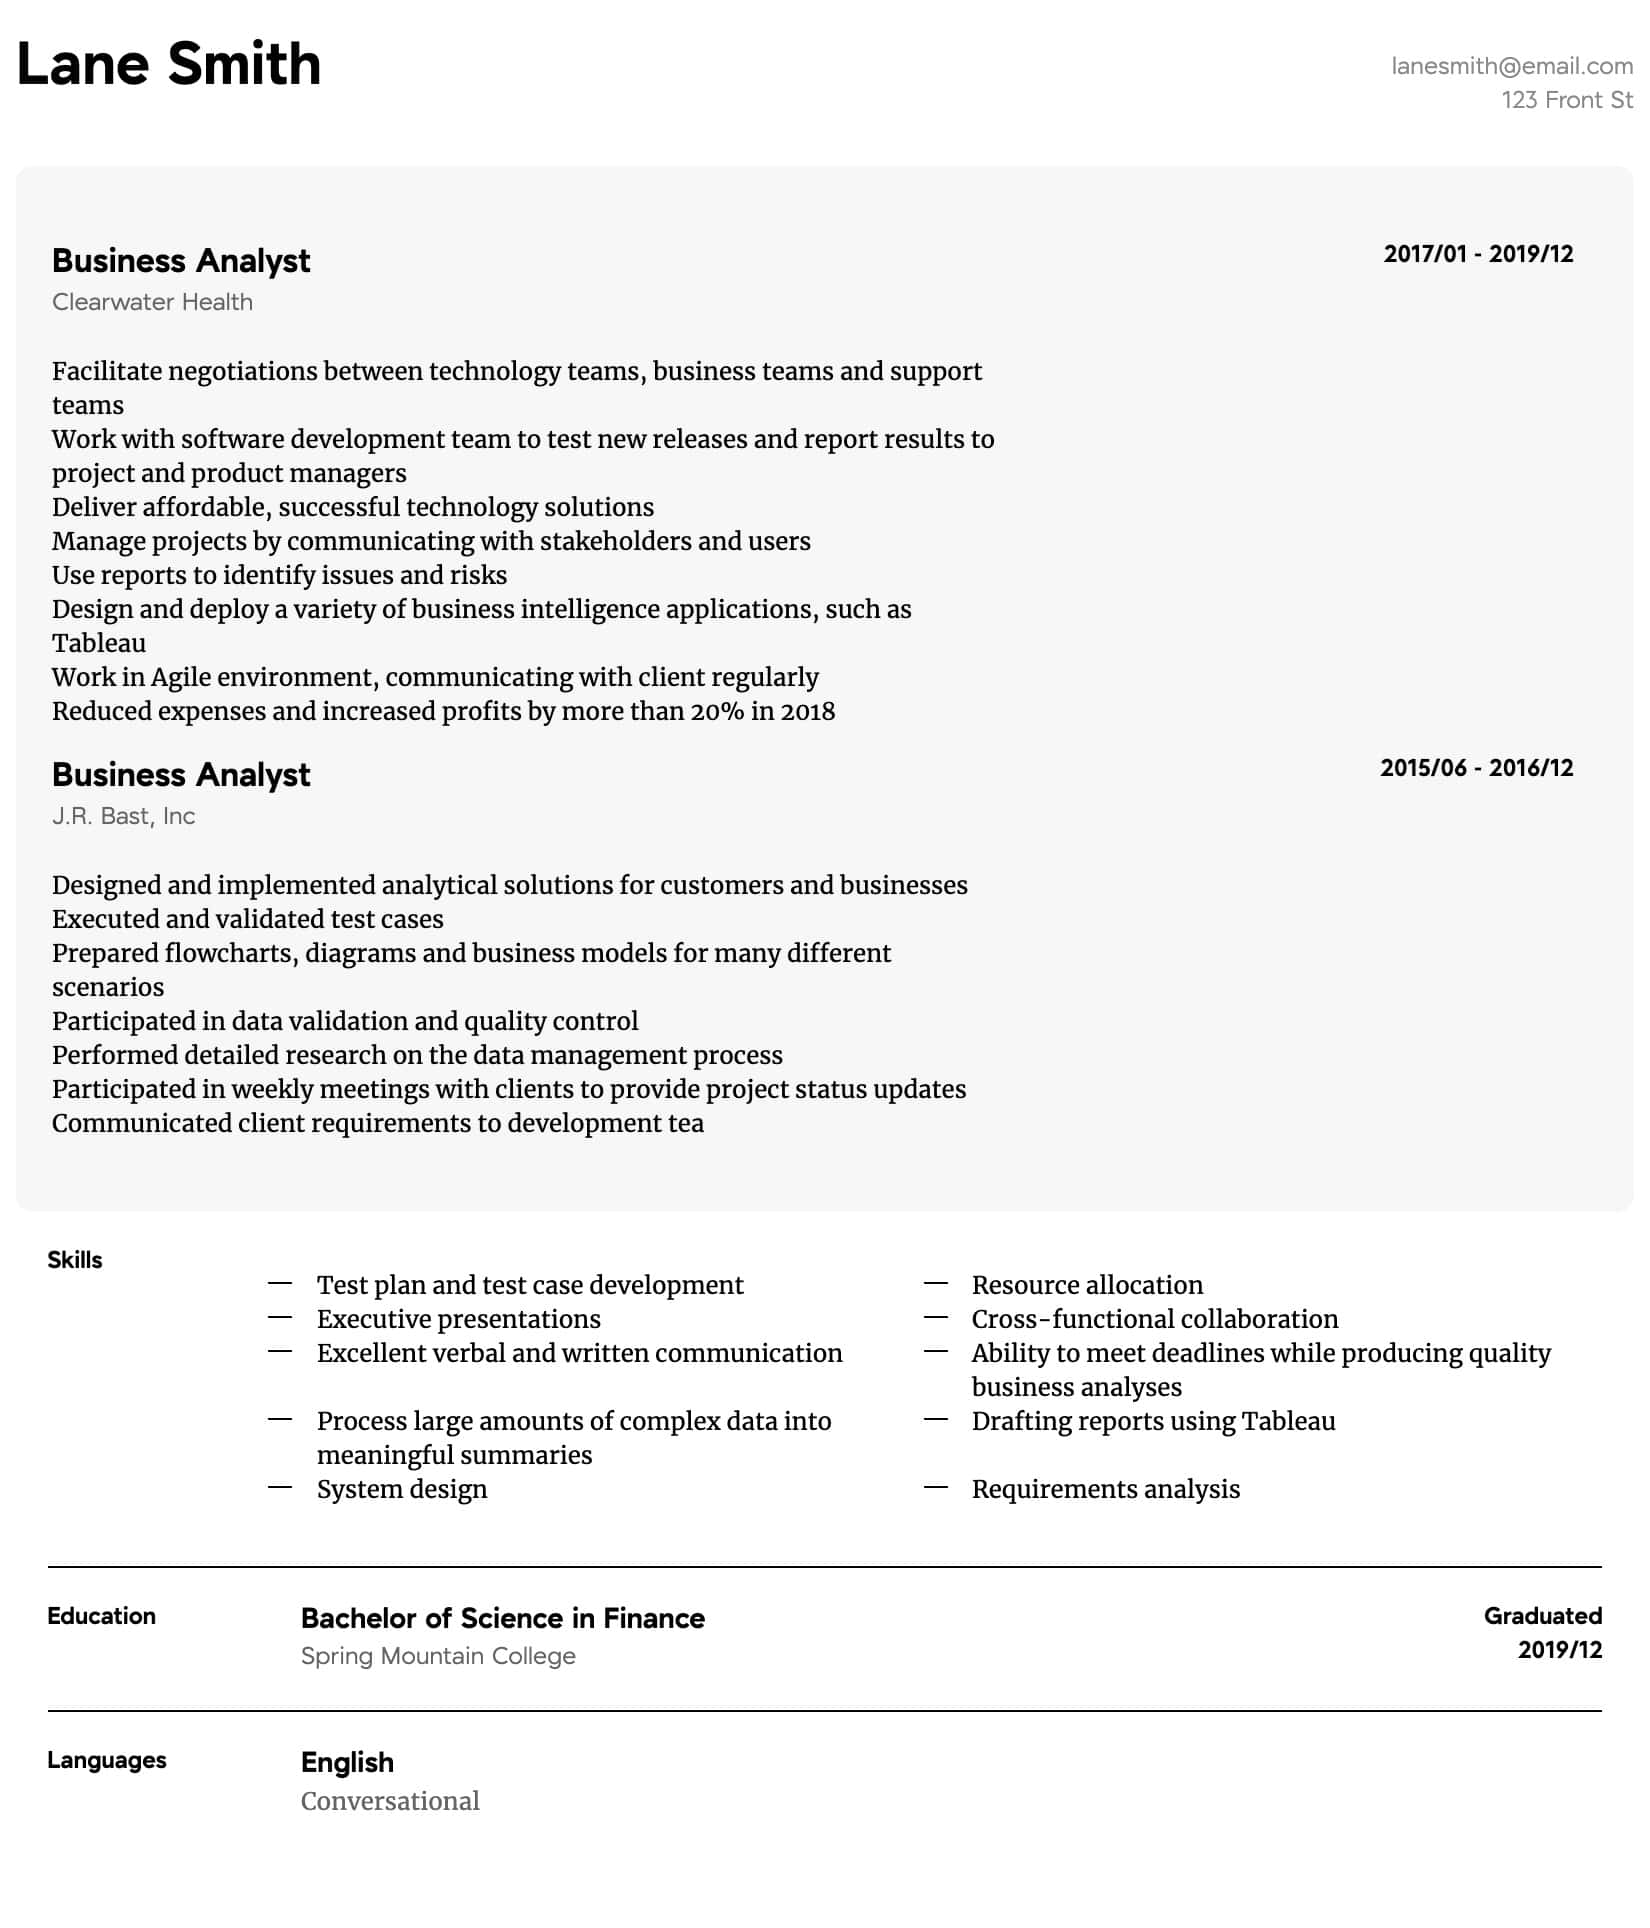 business analyst resume samples all experience levels senior objective intermediate Resume Senior Business Analyst Resume Objective